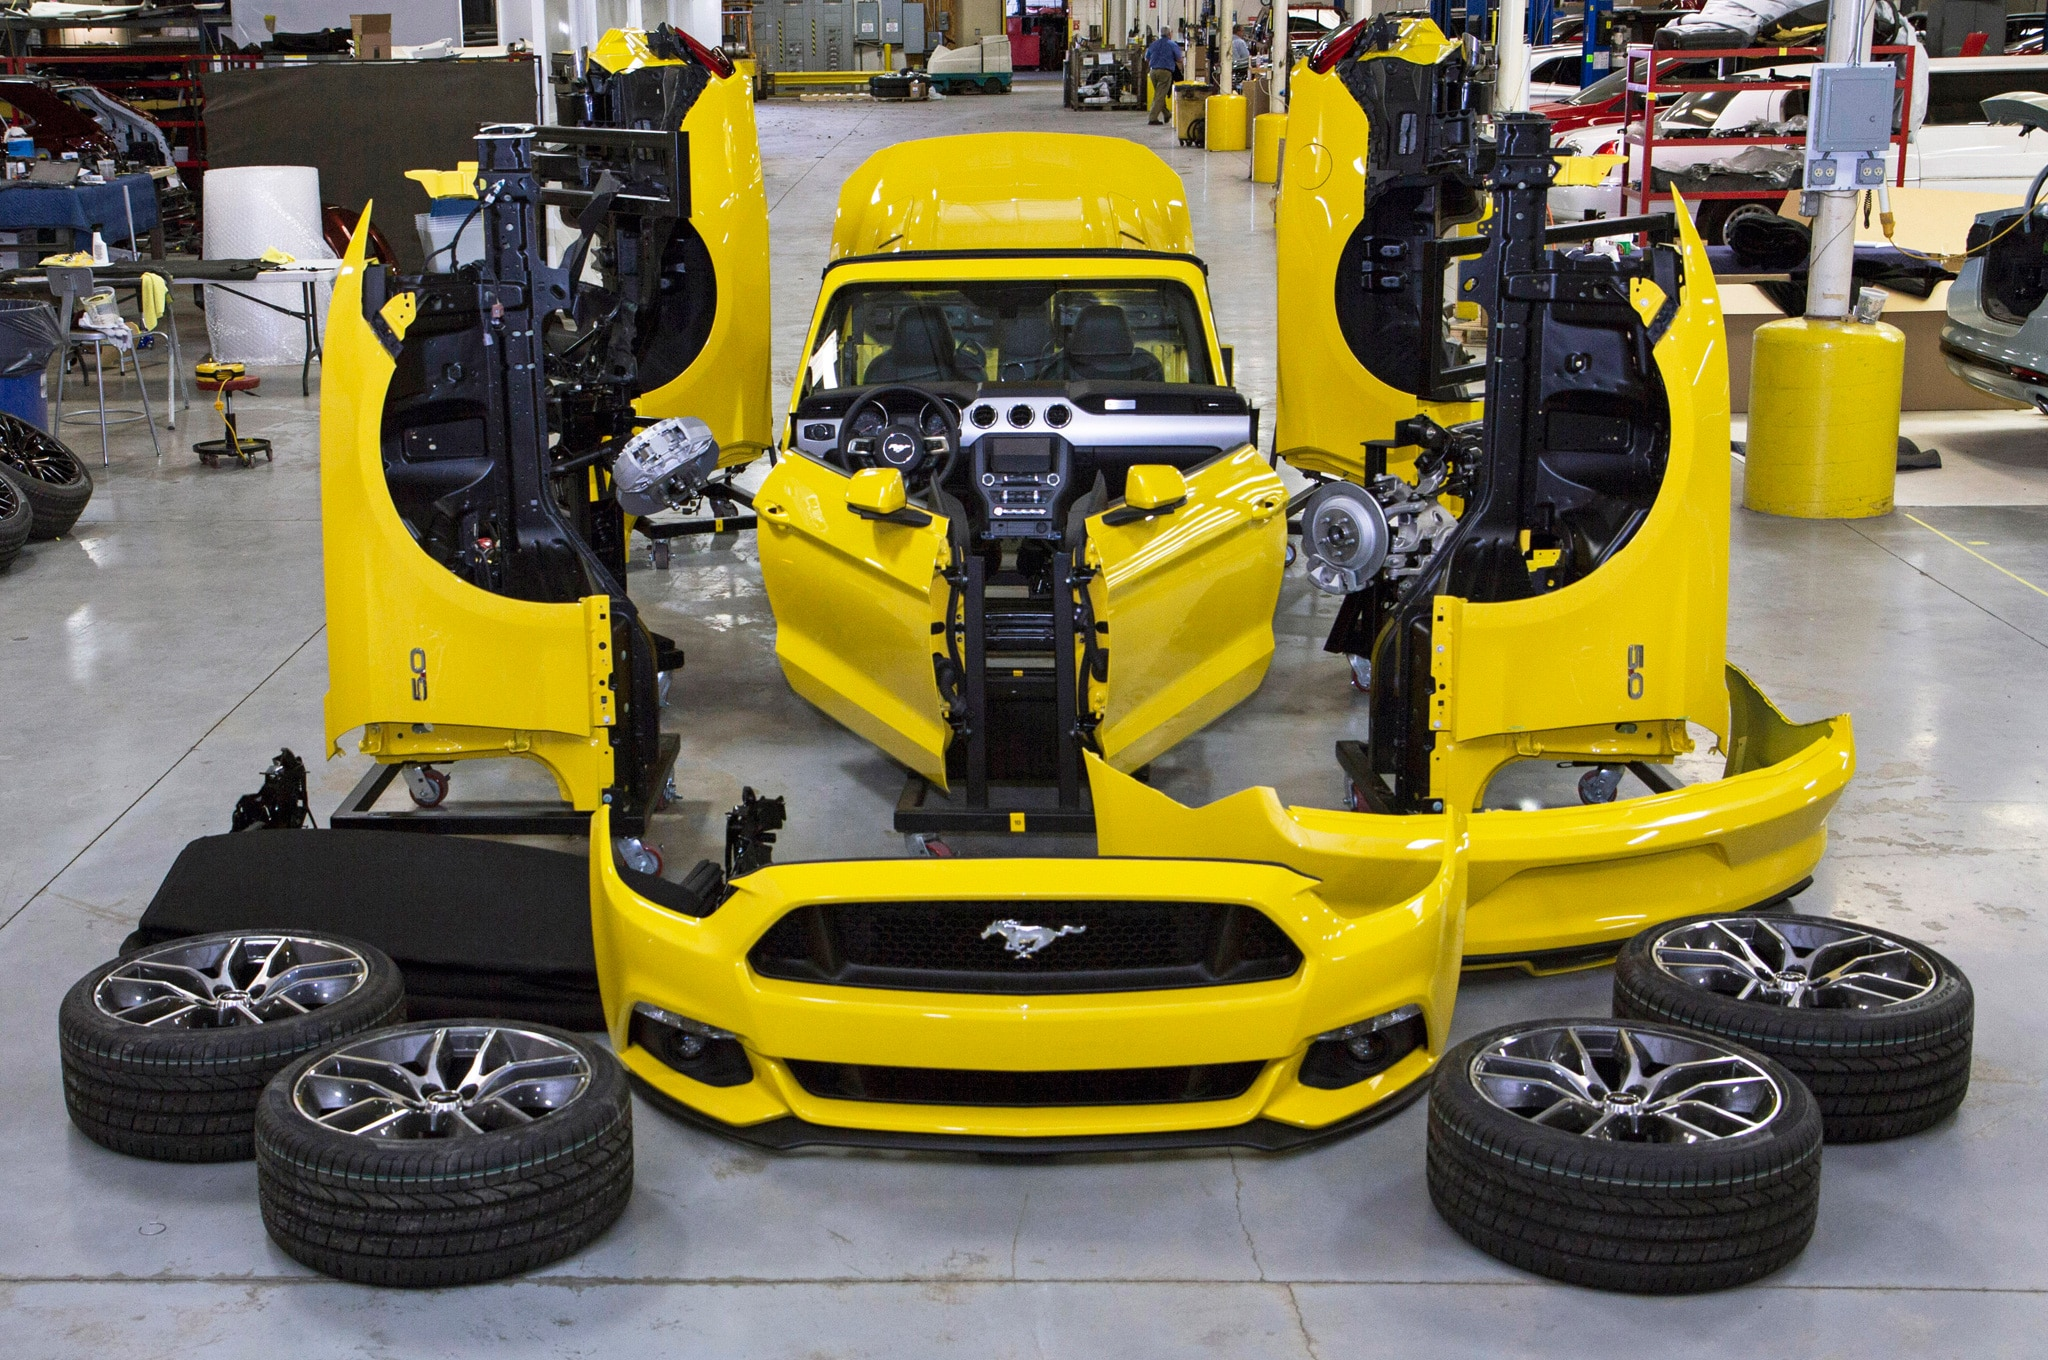 2015 Ford Mustang Convertible Empire State Building Disassembled1